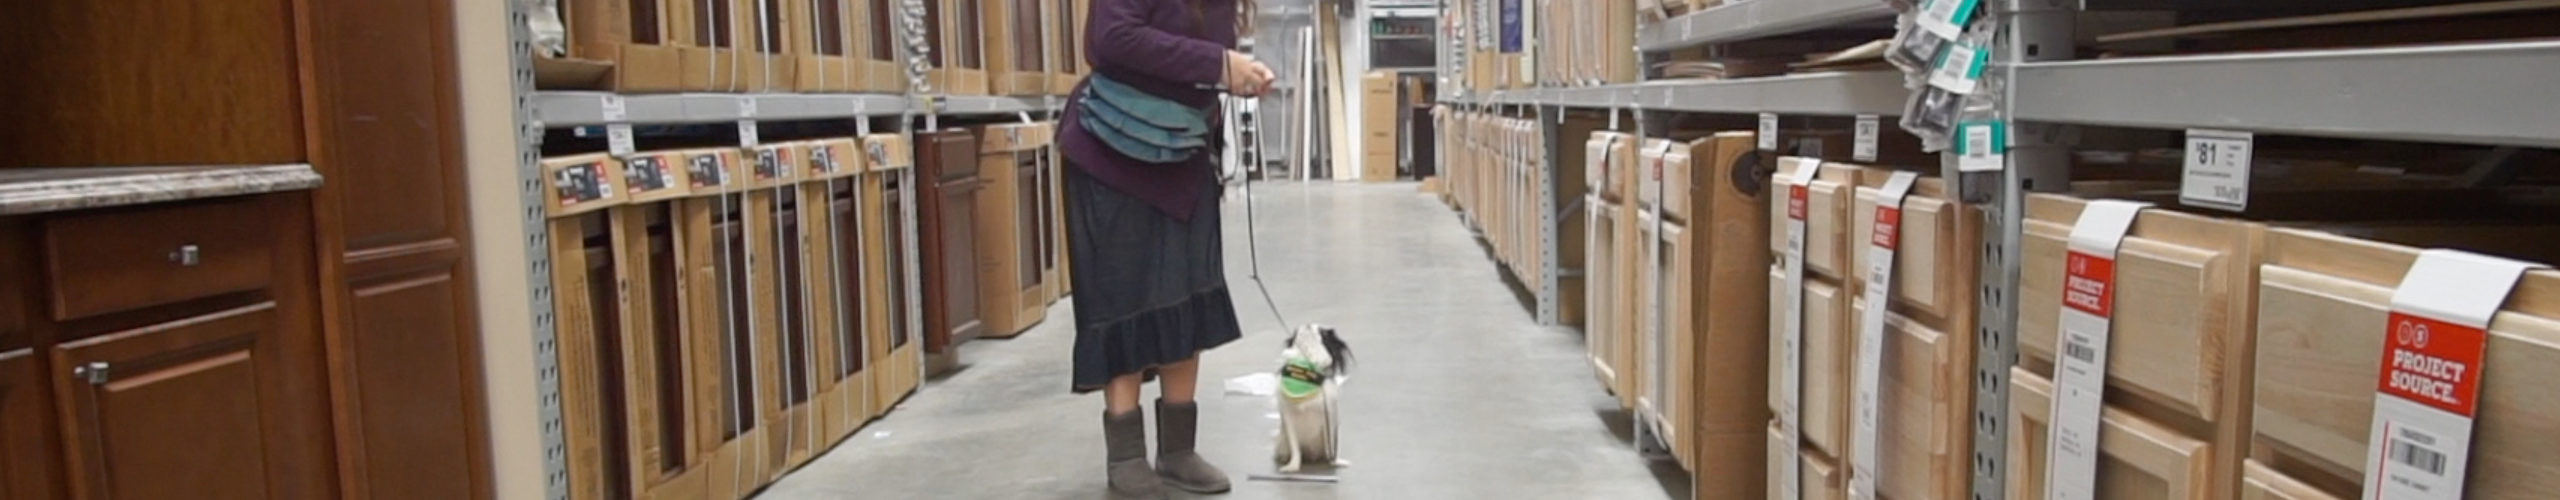 Hestia and Veronica in Lowe's ignoring trash on the floor